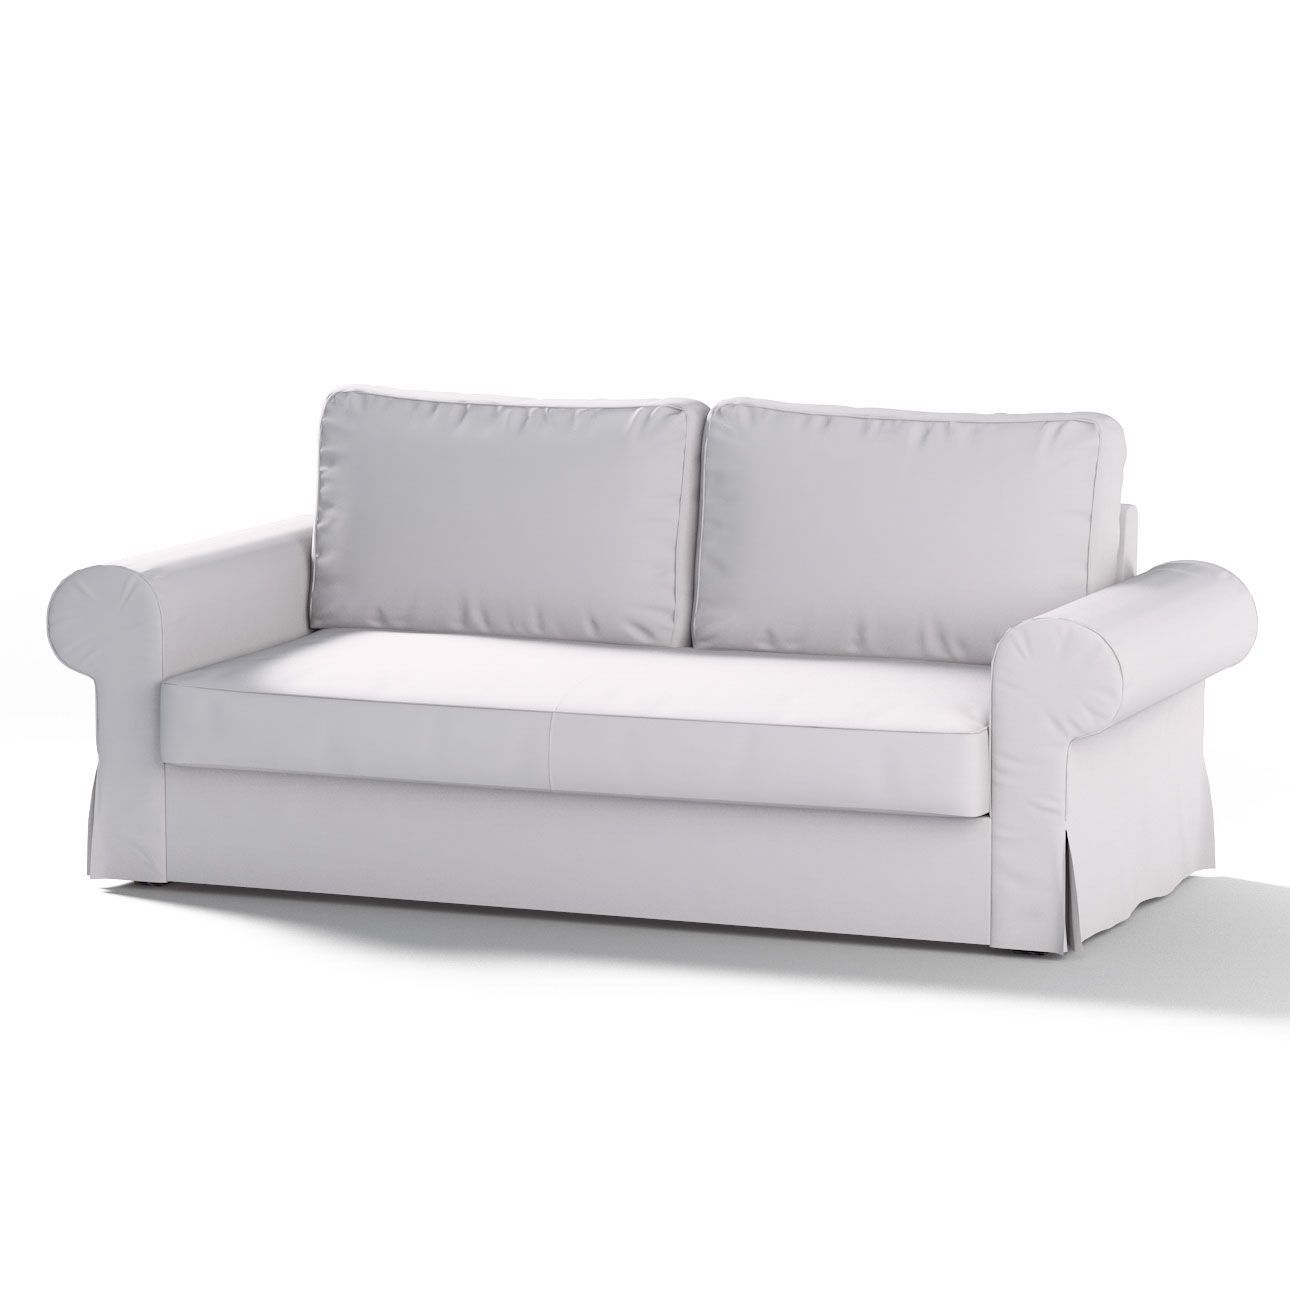 Sofa Uk Finance Sofa Sales Hull Sofa Finance Sofa 2 5k Sofa And Stuff Sofa